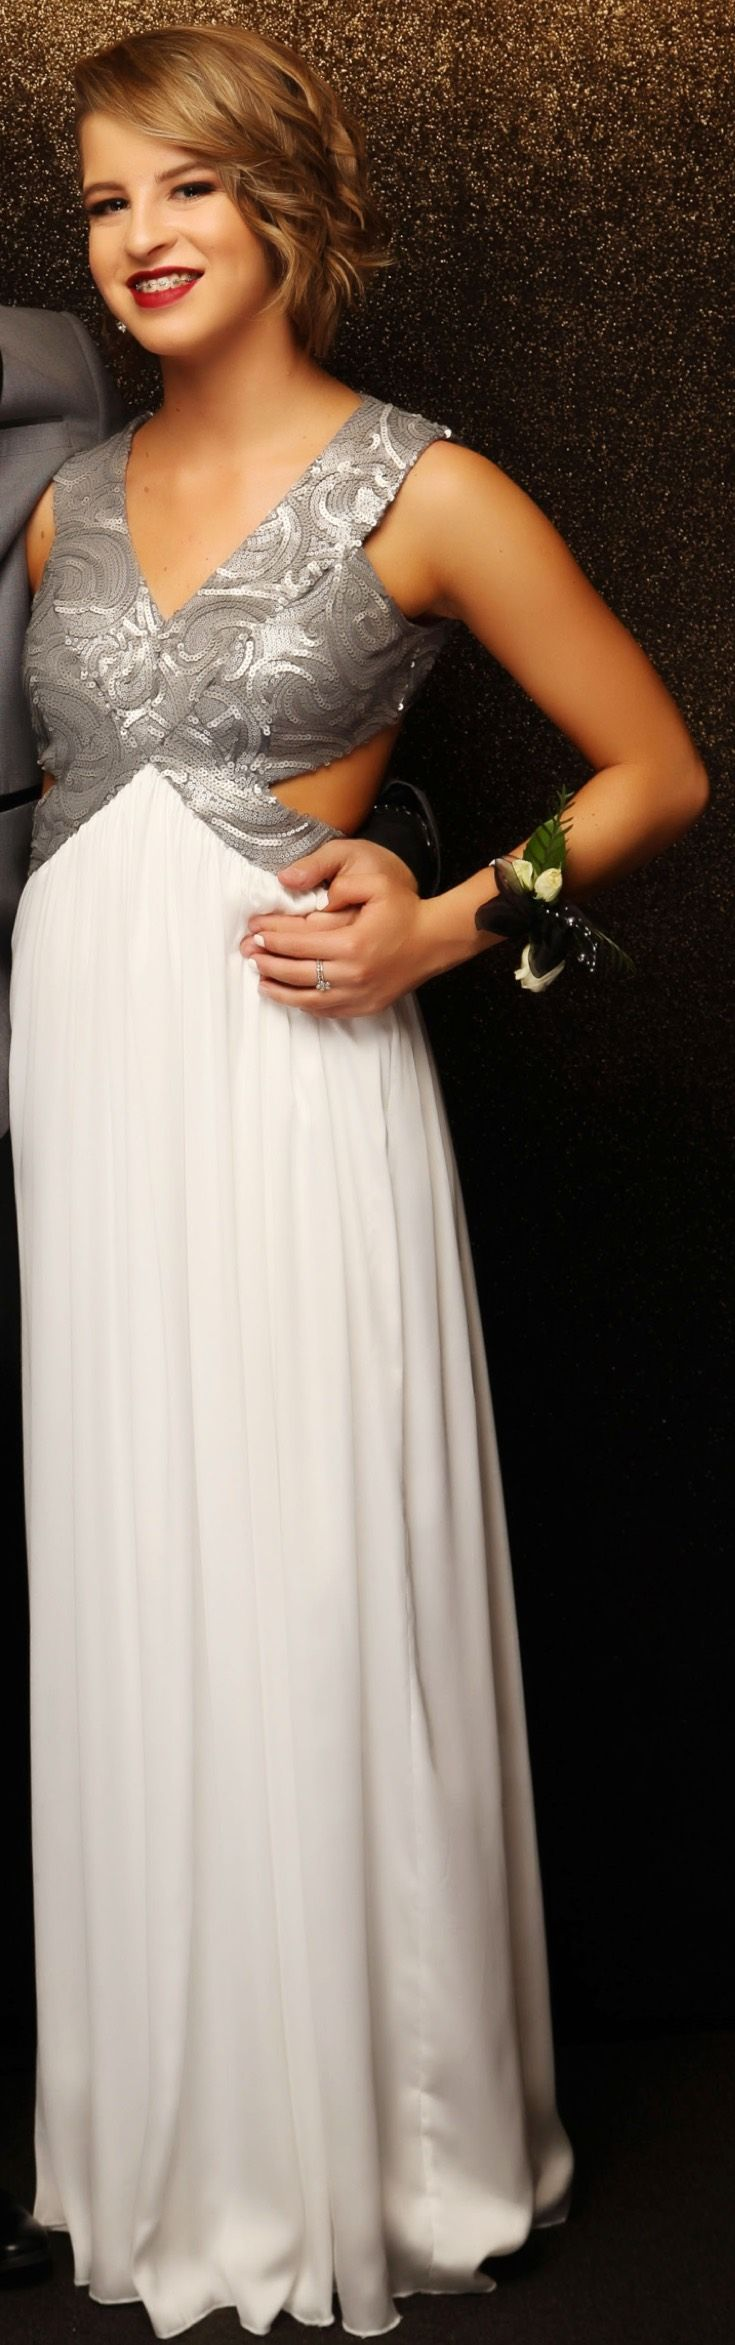 Rosehill Ball 2015. Love the white and silver! www.whitedoor.co.nz